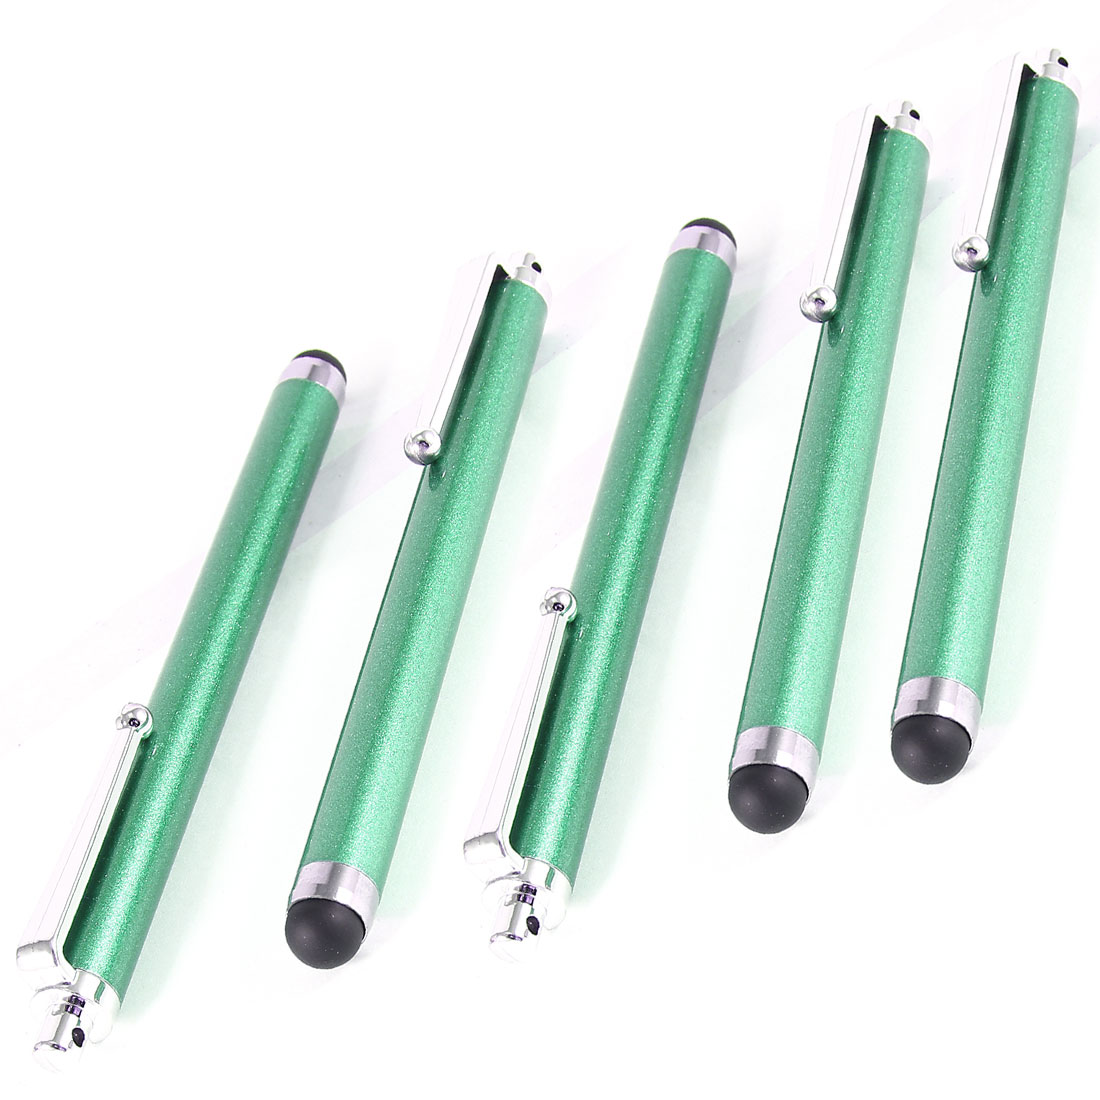 5 Pcs Green Alloy Touch Screen Stylus Pen for Mobile Phone